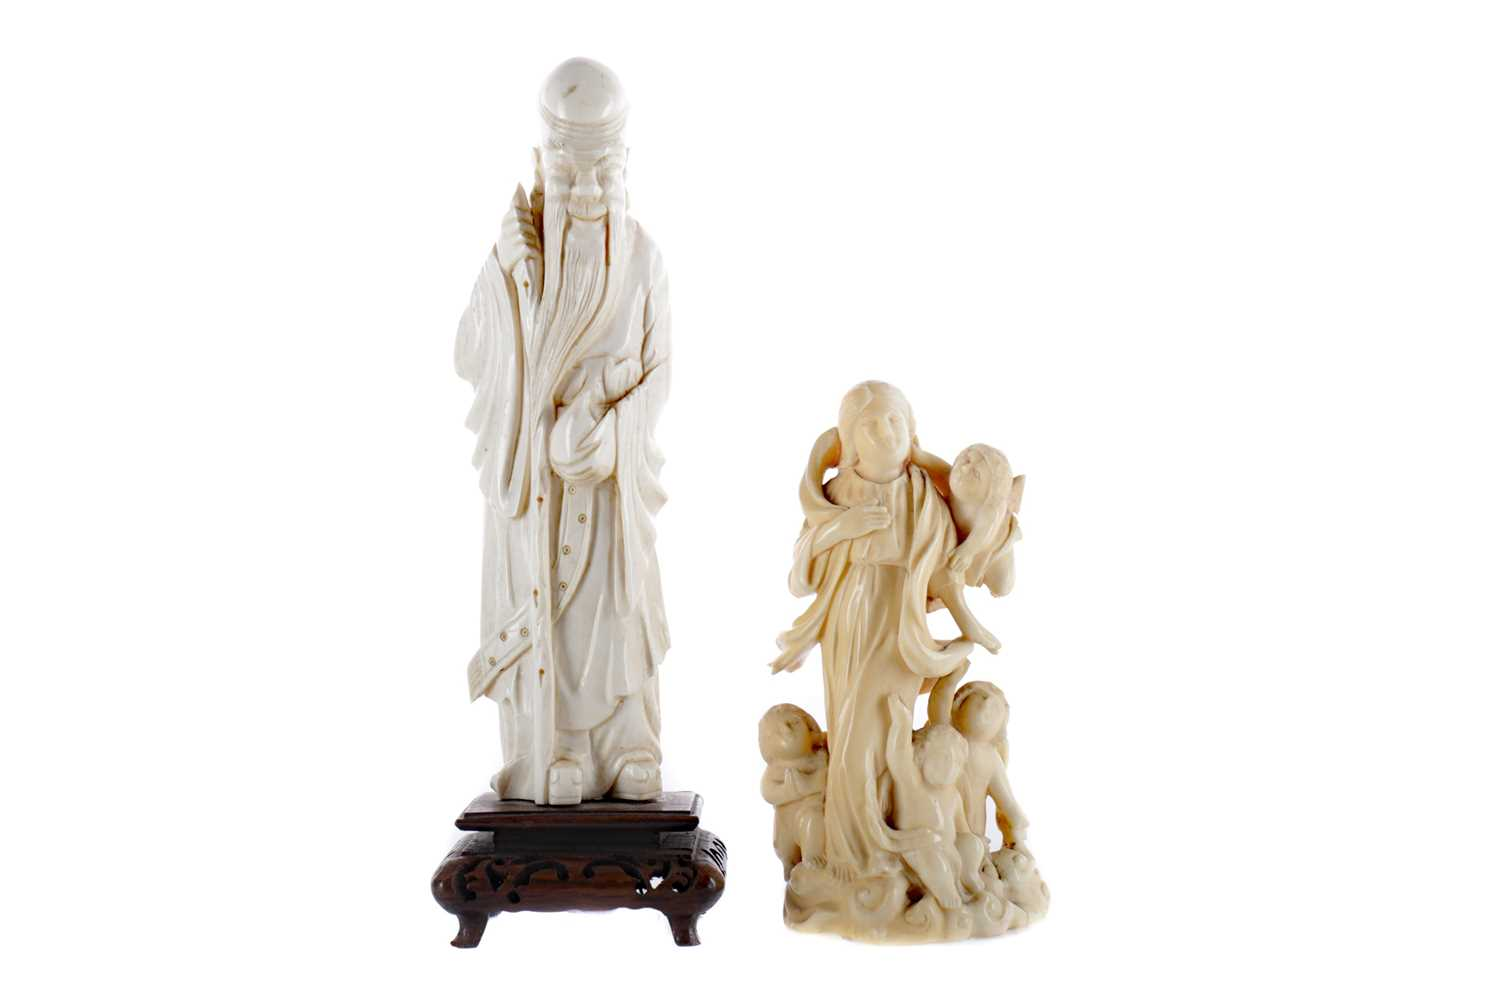 Lot 816 - AN EARLY 20TH CENTURY CHINESE CARVED IVORY FIGURE AND ANOTHER